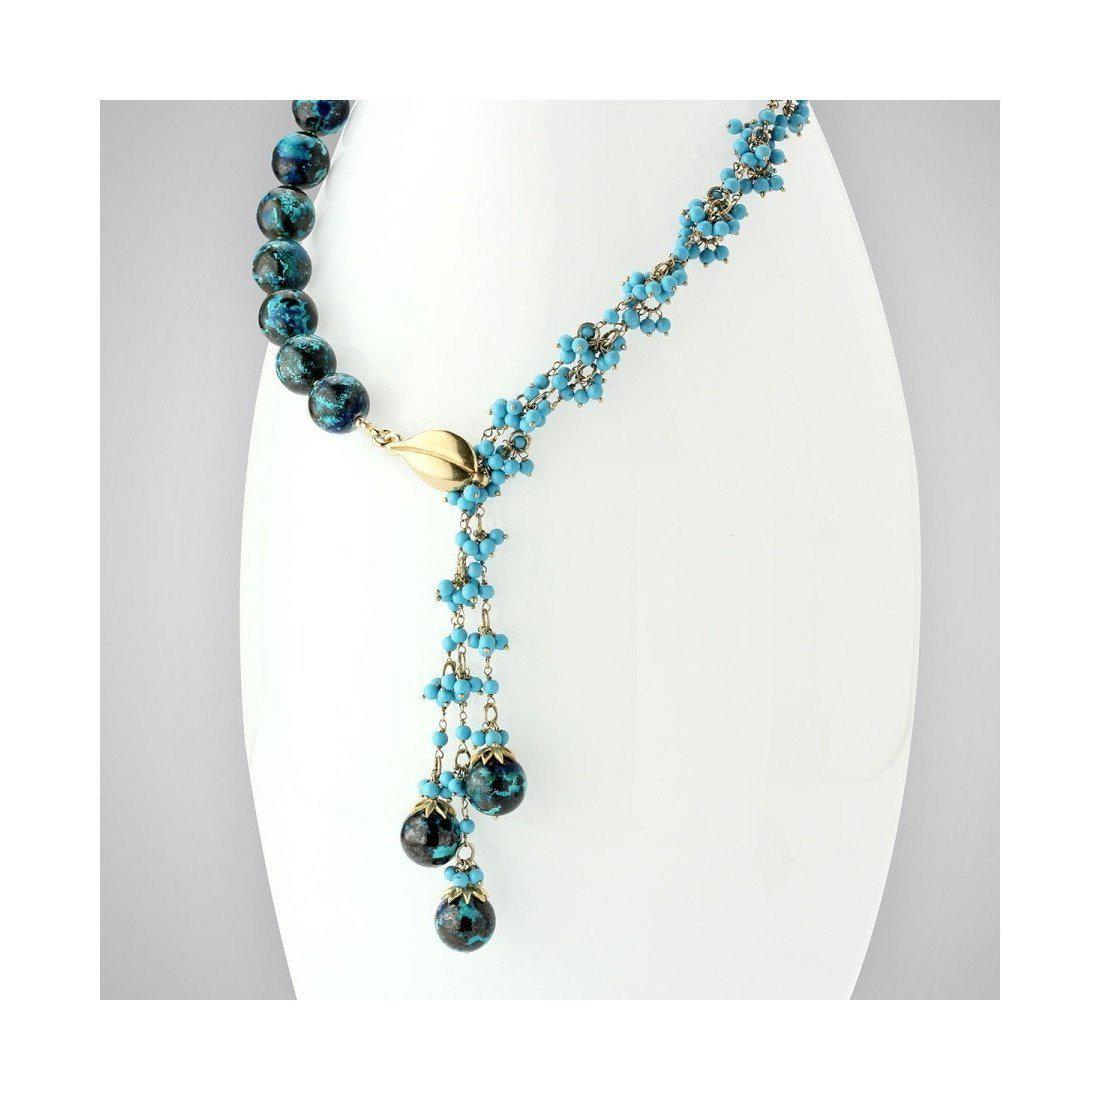 Elisa Ilana Jewelry Yellow Gold, Chrysocolla & Turquoise Necklace | in Blue